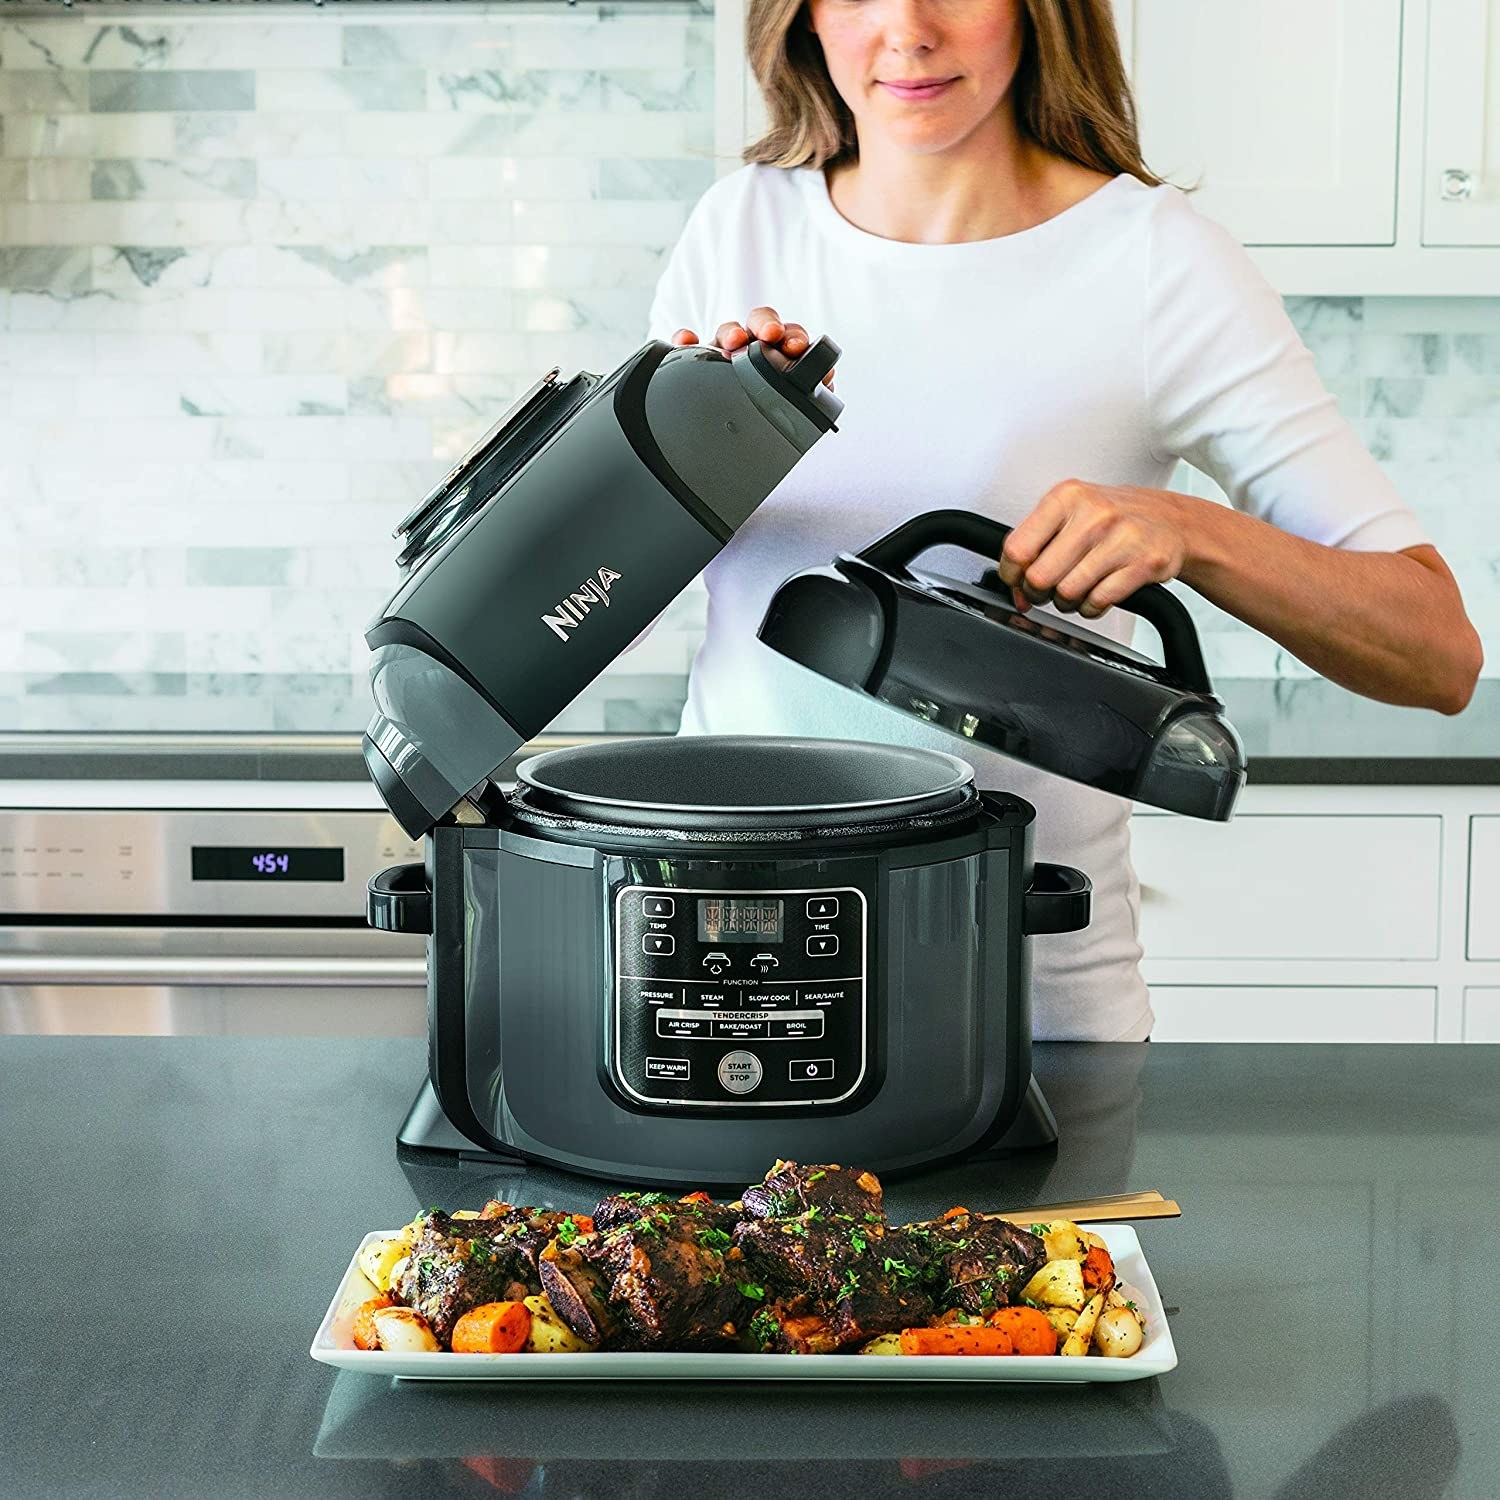 Ninja Foodi 9-in-1 Pressure, Slow Cooker, Air Fryer